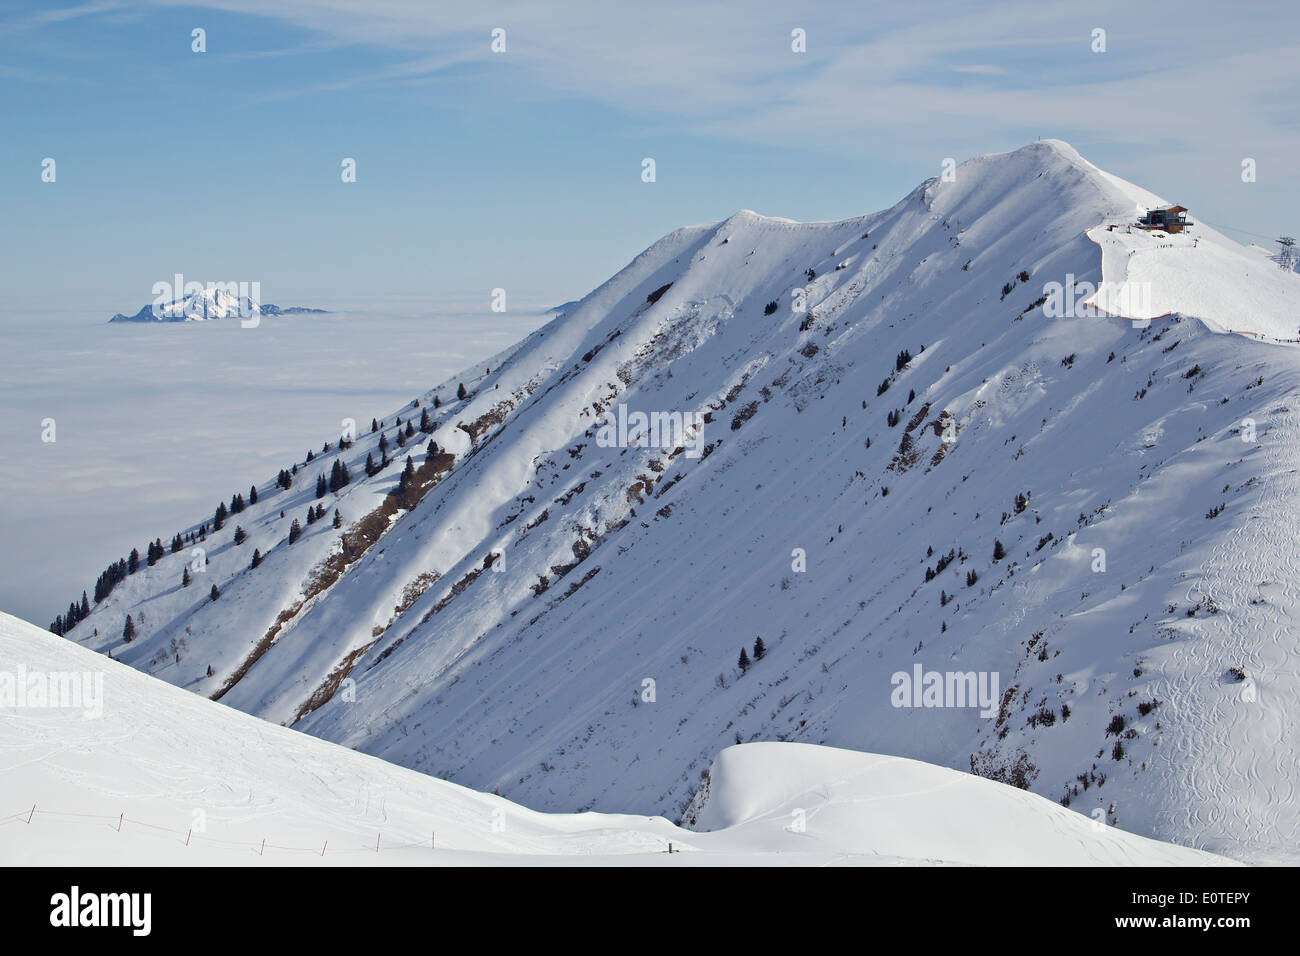 Winter landscape viewed from Kanzelwand, mountain in Austria. Mountain Grunten in clouds in the background. Stock Photo